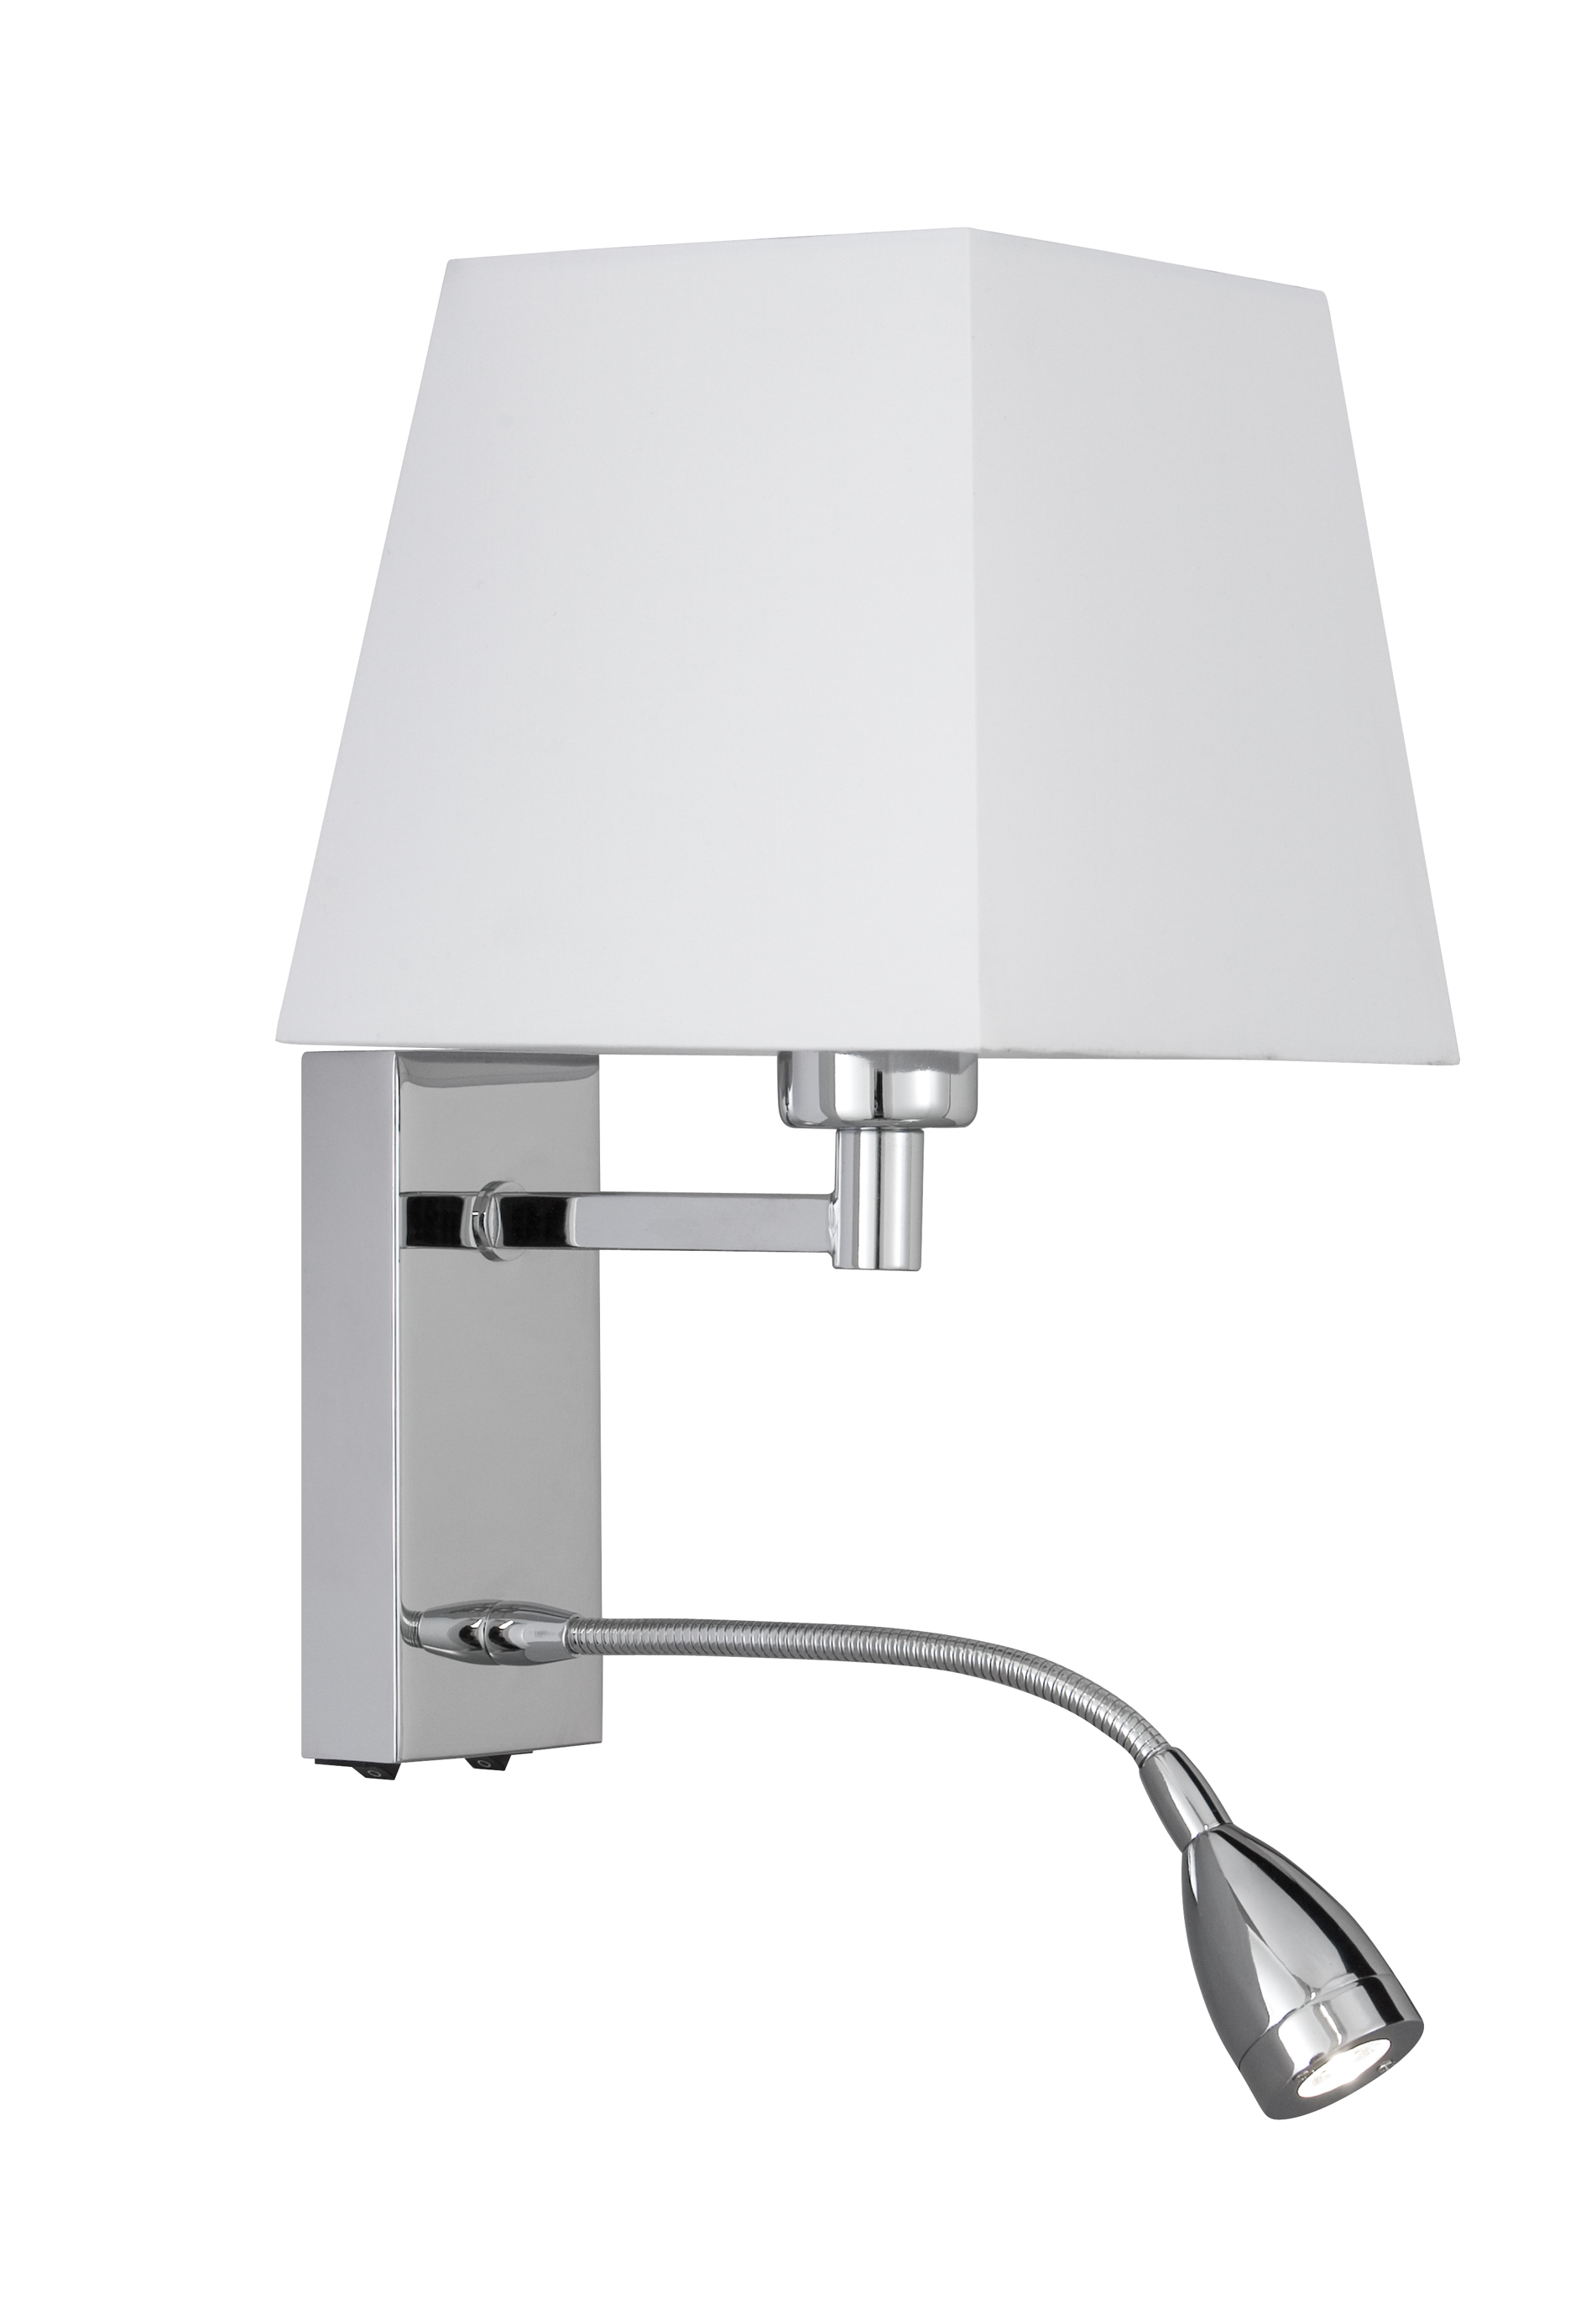 Hanging Lights That Plug Into Wall : The Largest Range of Wall Lights The Lighting Expert Inspiration for Home Interiors